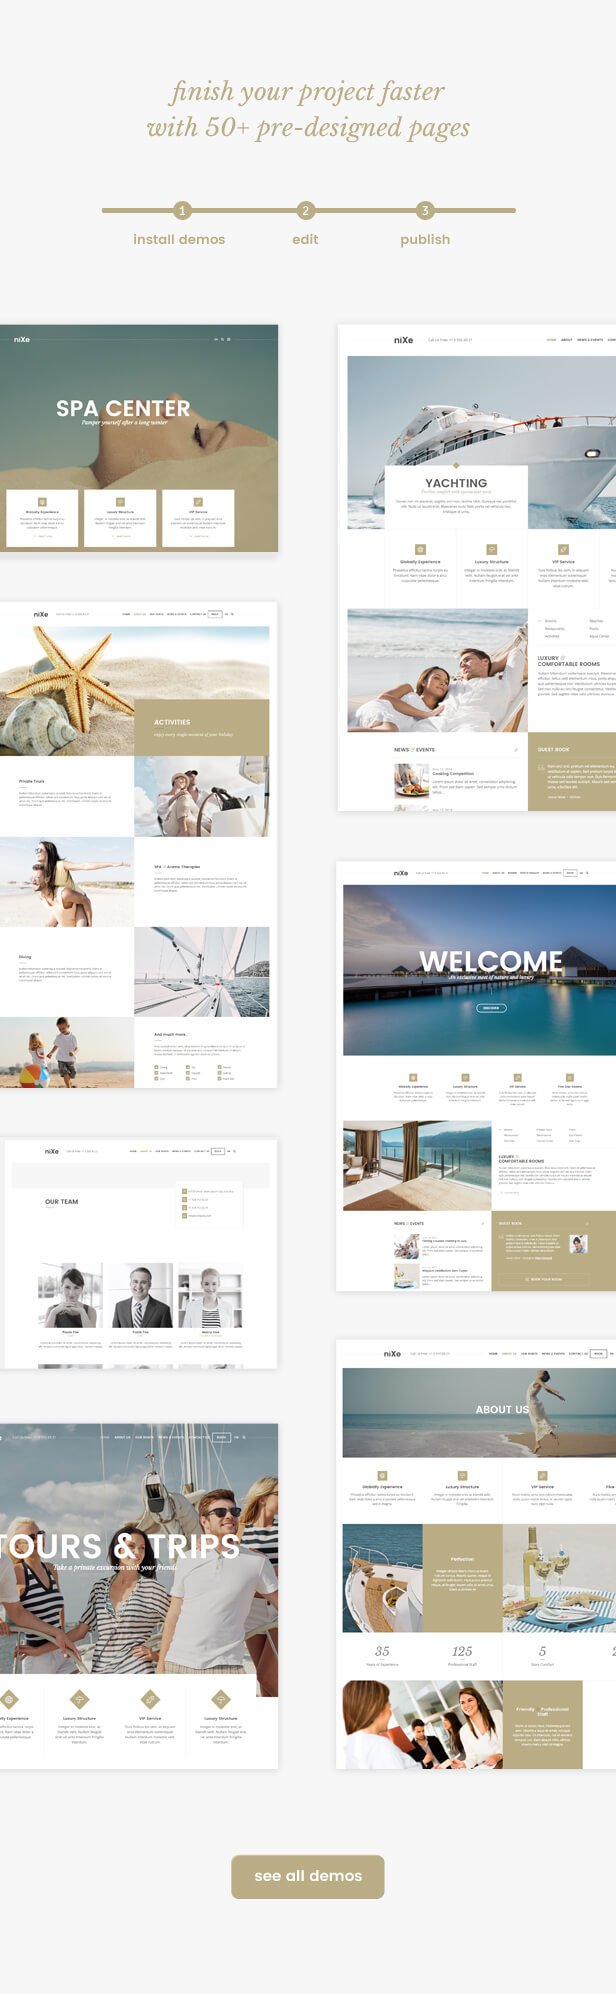 Nixe | Hotel, Travel and Holiday WordPress Theme - 5